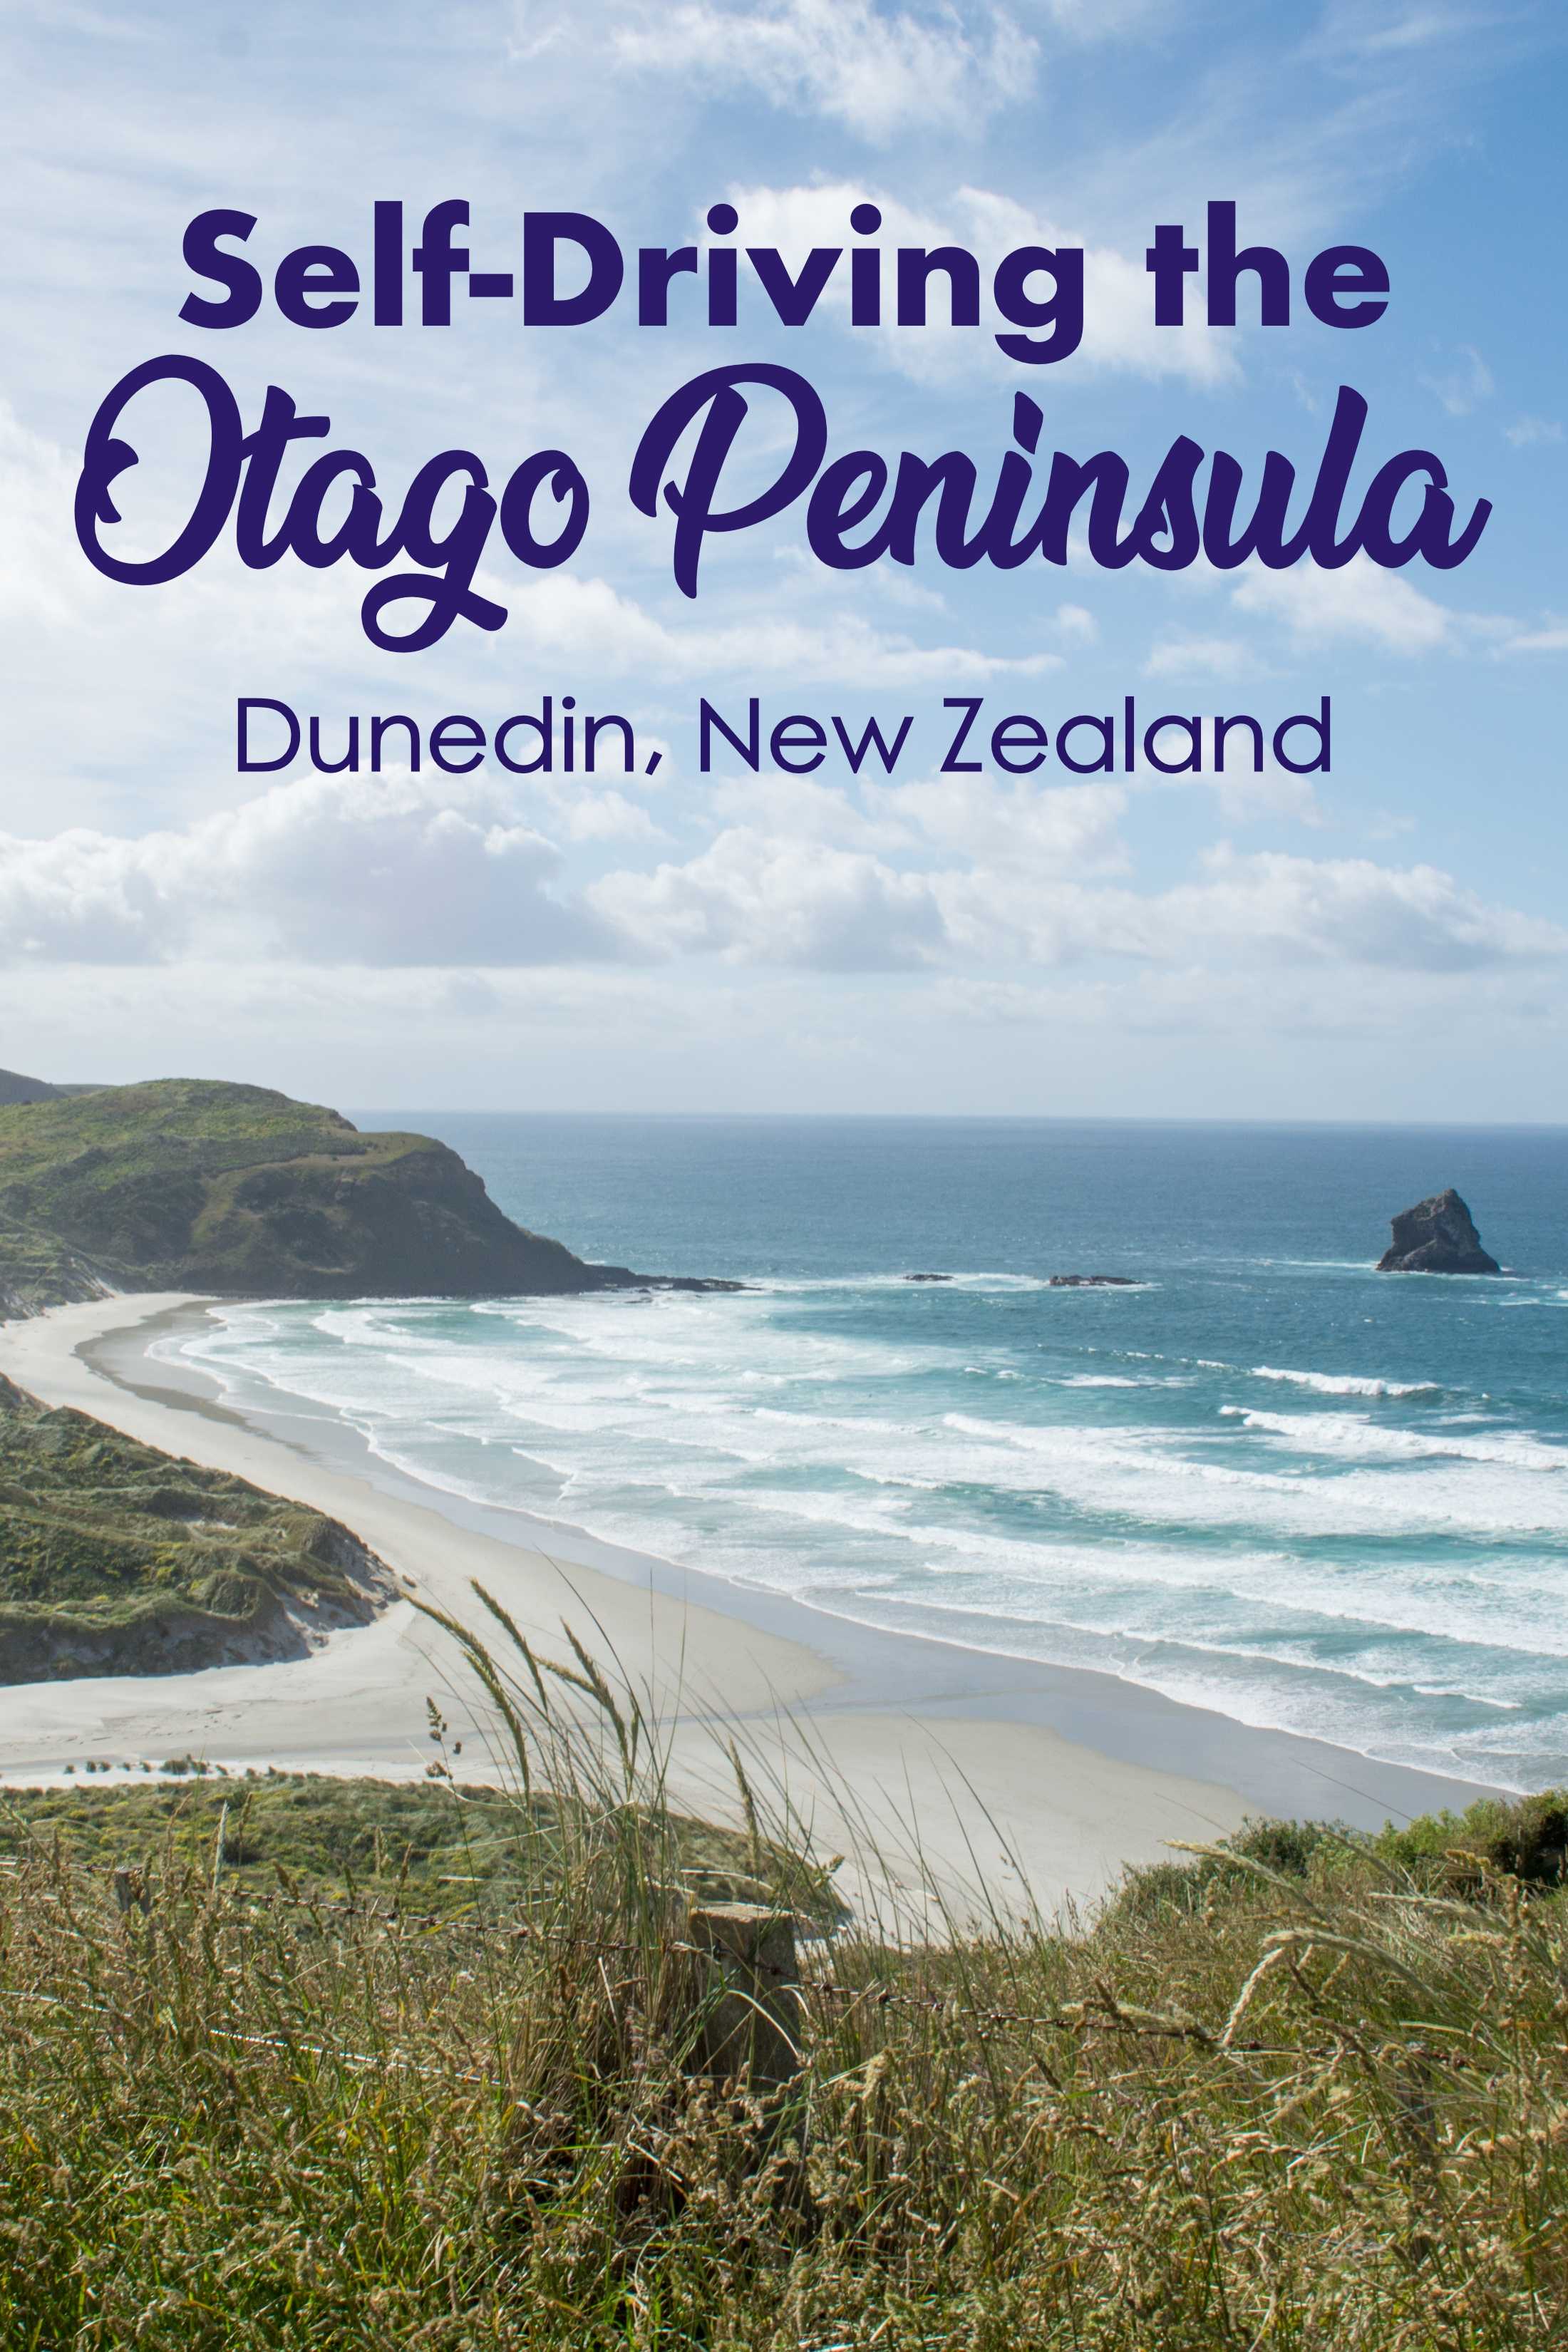 Self-Driving the Otago Peninsula from Dunedin, New Zealand.  DIY Cruise Shore Excursion for New Zealand.  Dramatic coastal views and rare wildlife spotting. #otago #dunedin #newzealand #cruise